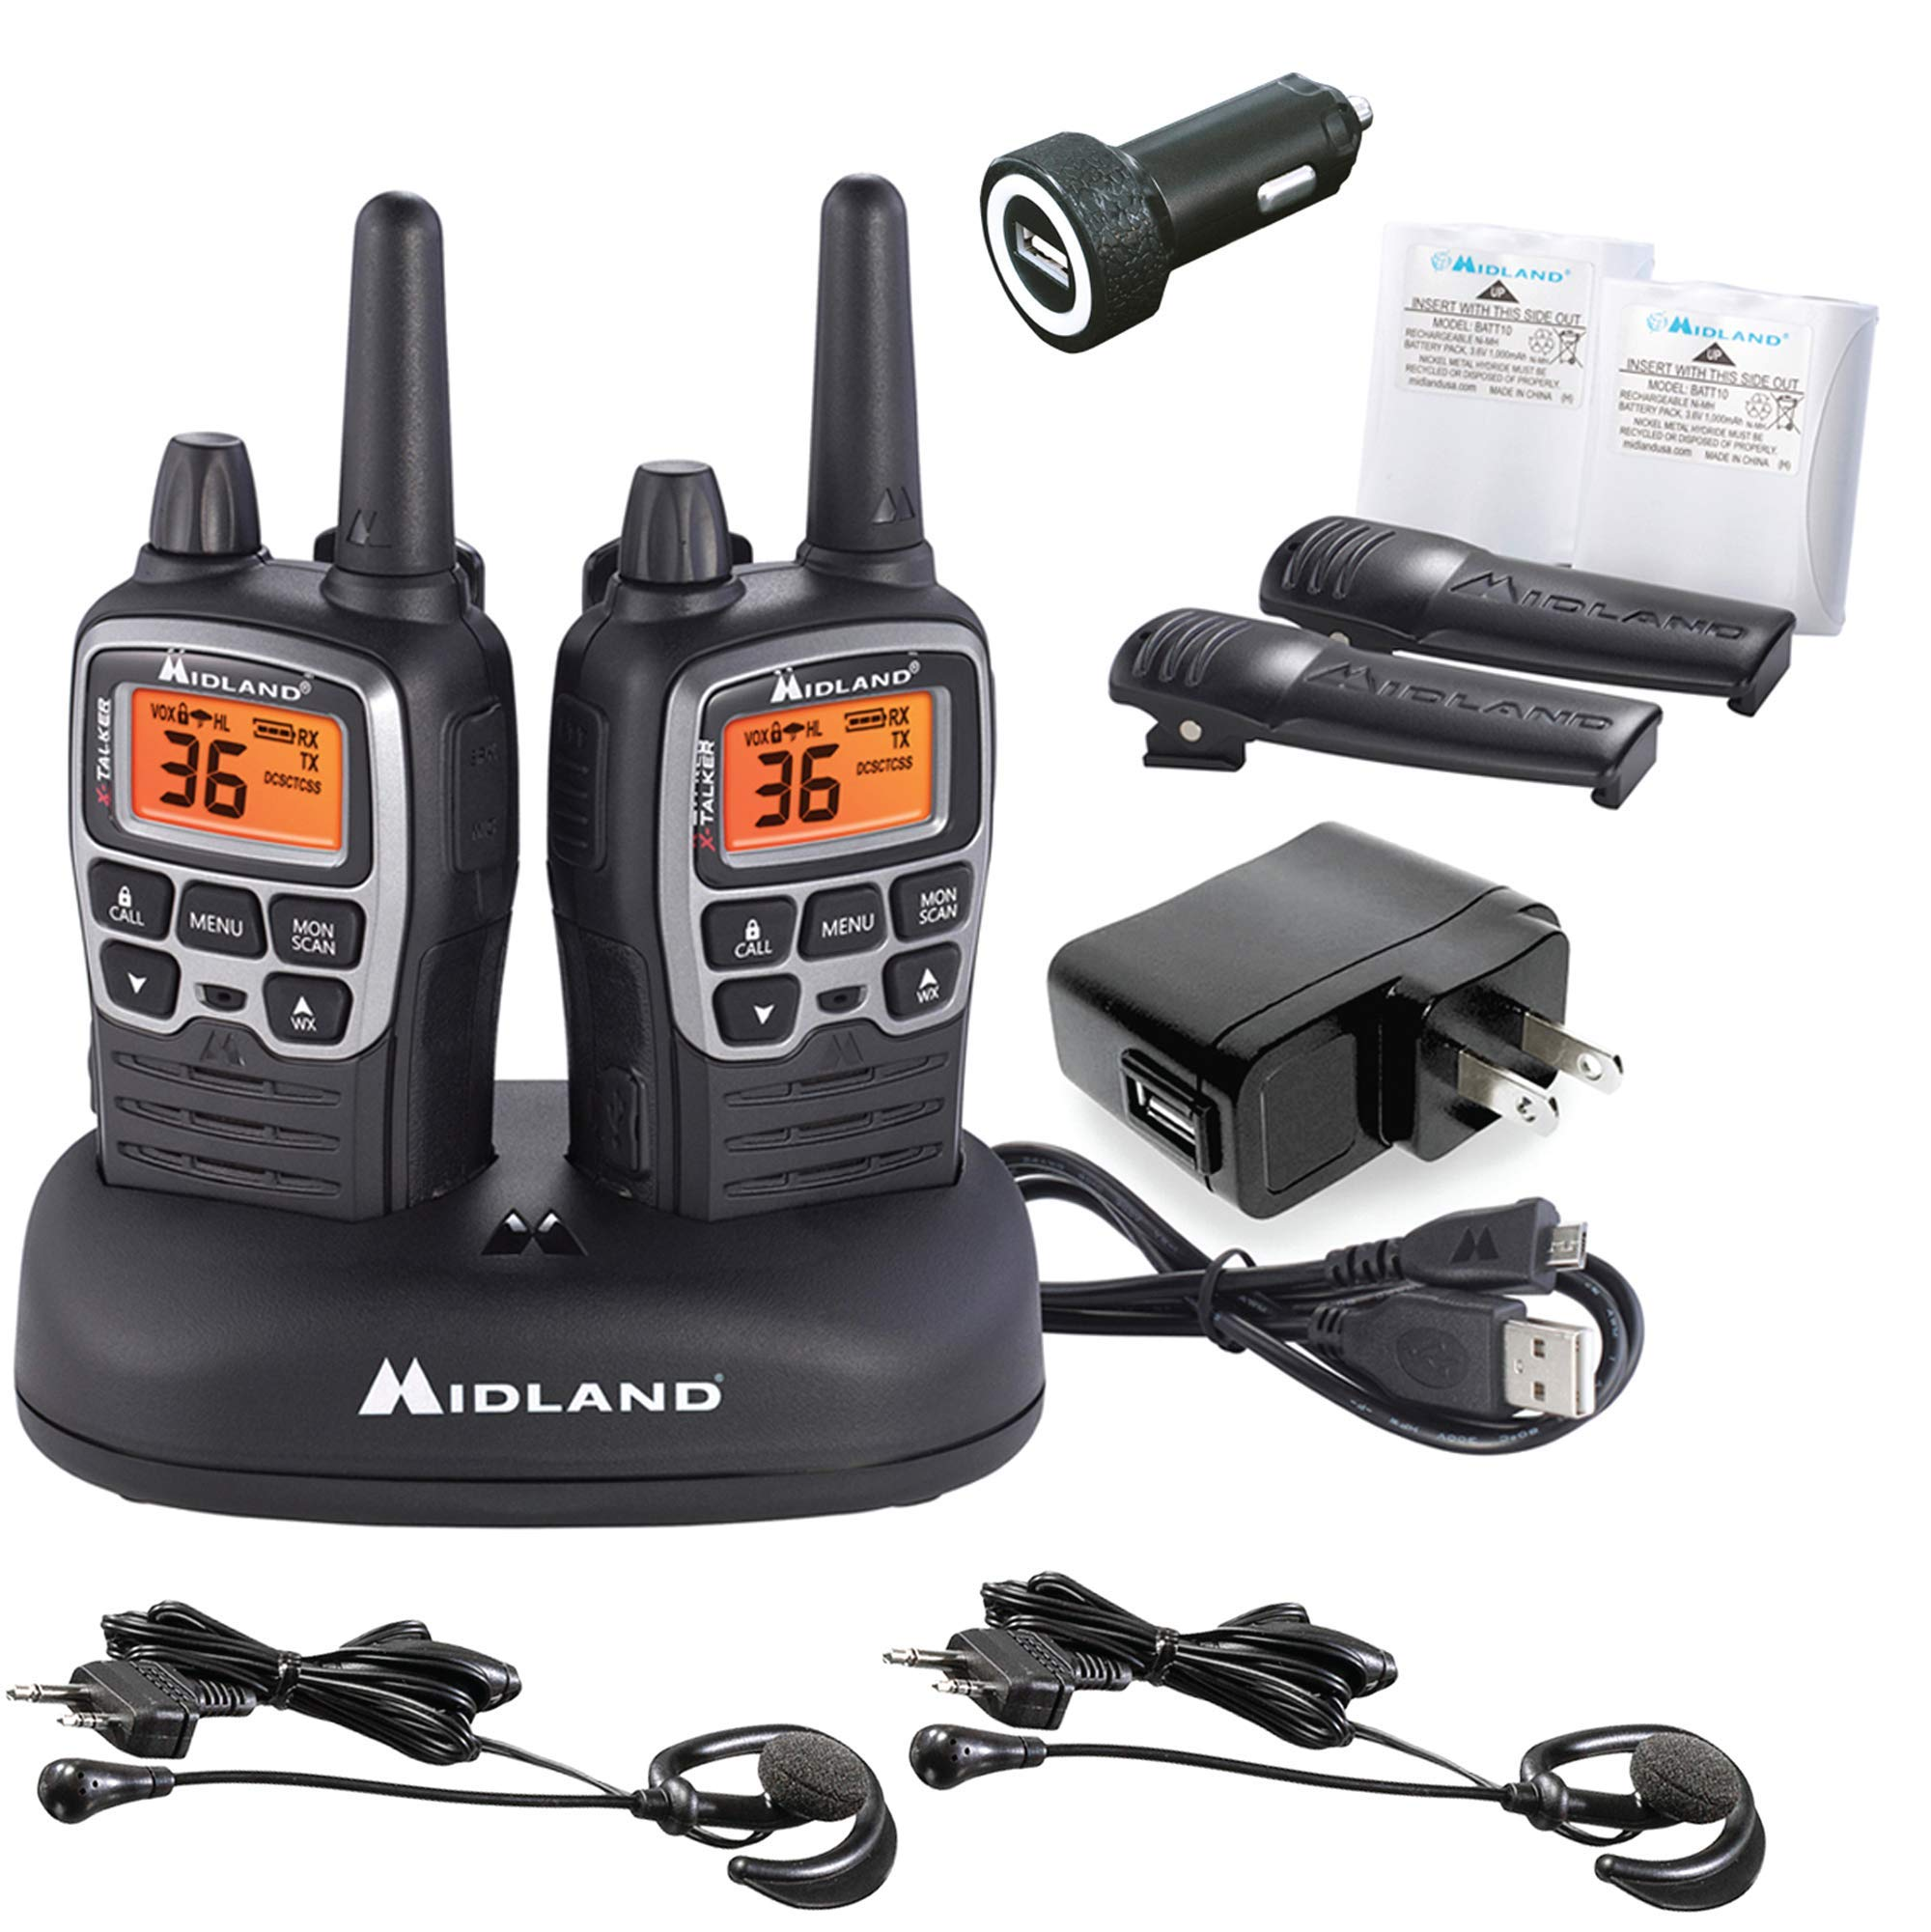 Midland - X-TALKER T77VP5, 36 Channel FRS Two-Way Radio - Up to 38 Mile Range Walkie Talkie, 121 Privacy Codes, and NOAA Weather Scan + Alert (Includes a Carrying Case and Headsets) (Black/Silver) by Midland